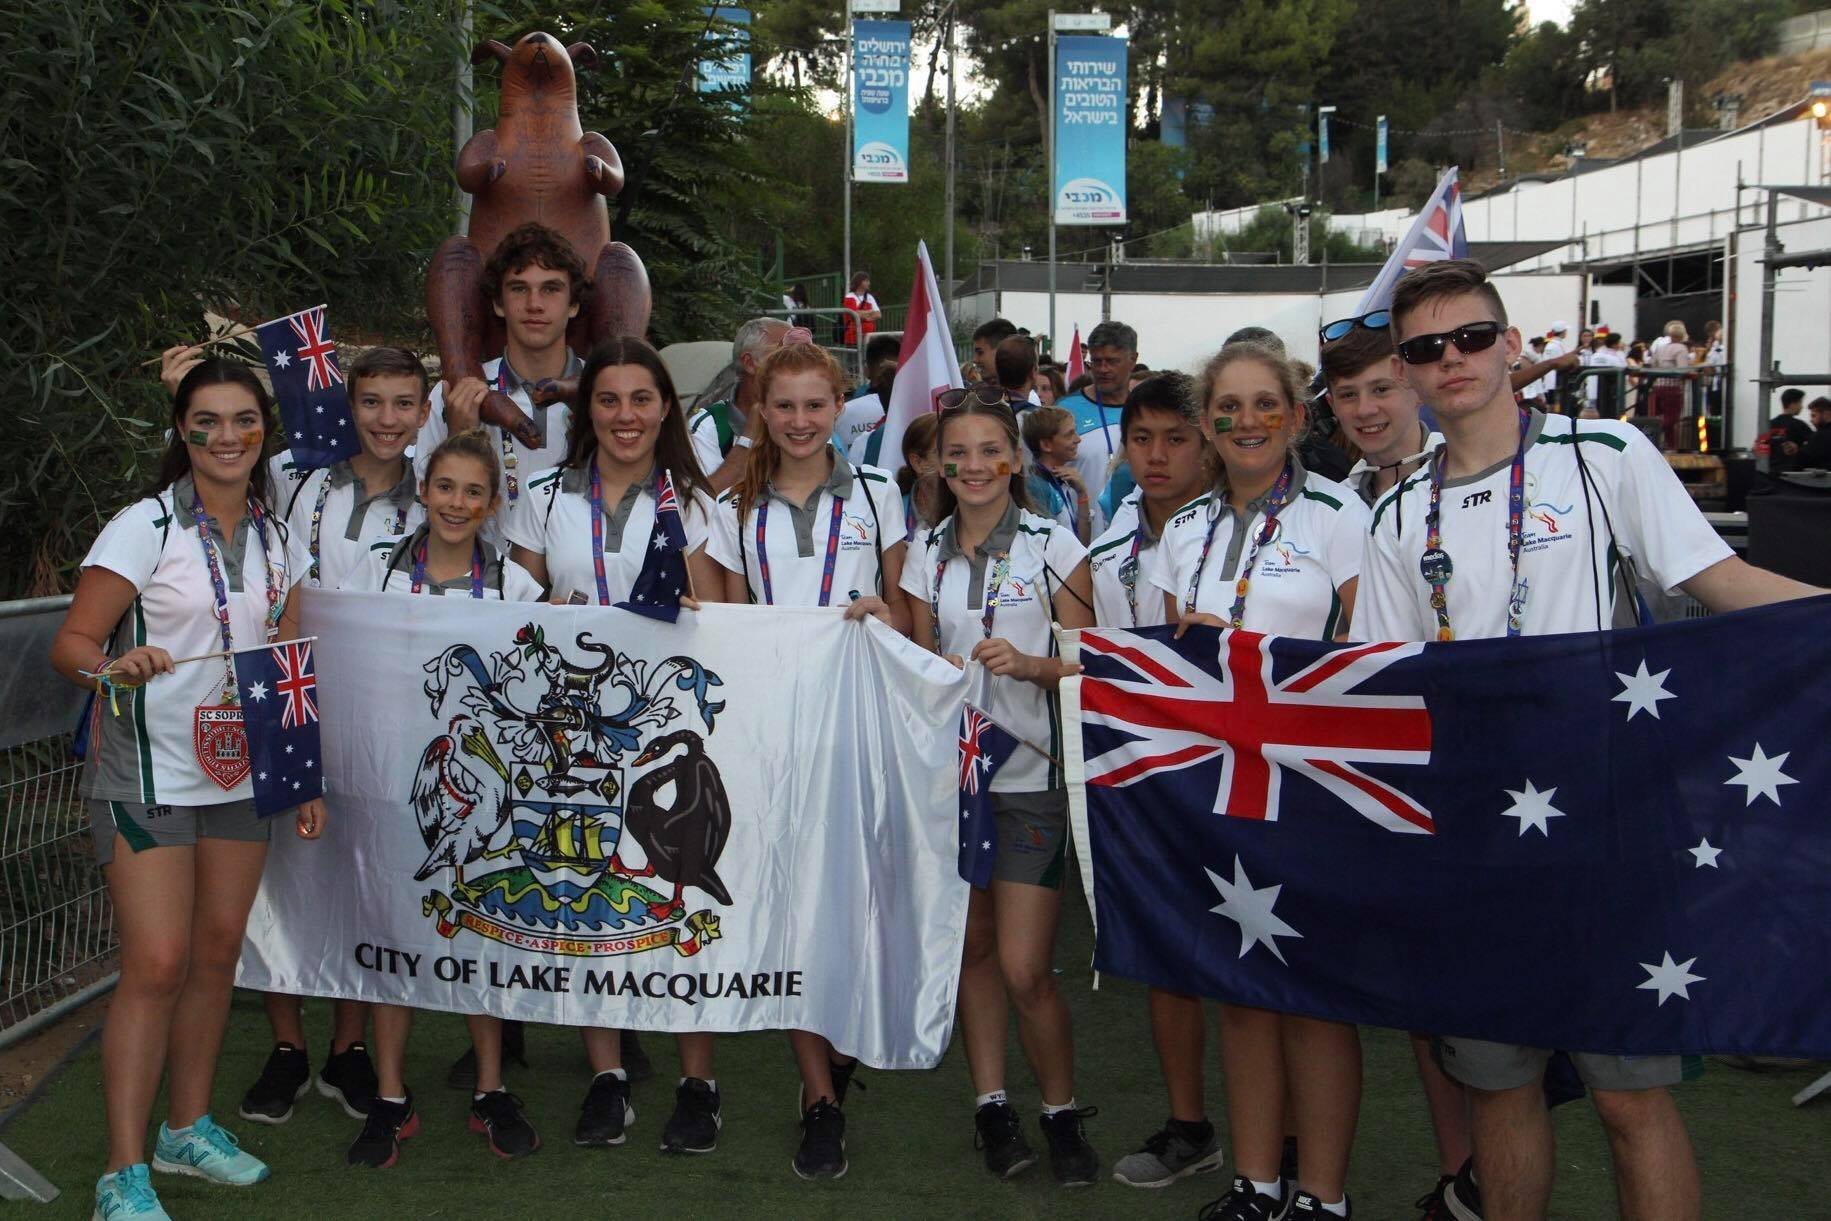 The first members of Team Lake Mac arrived home on Sunday following an unforgettable experience at the Jerusalem-held International Children's Games that was both rich in culture and sporting competition.